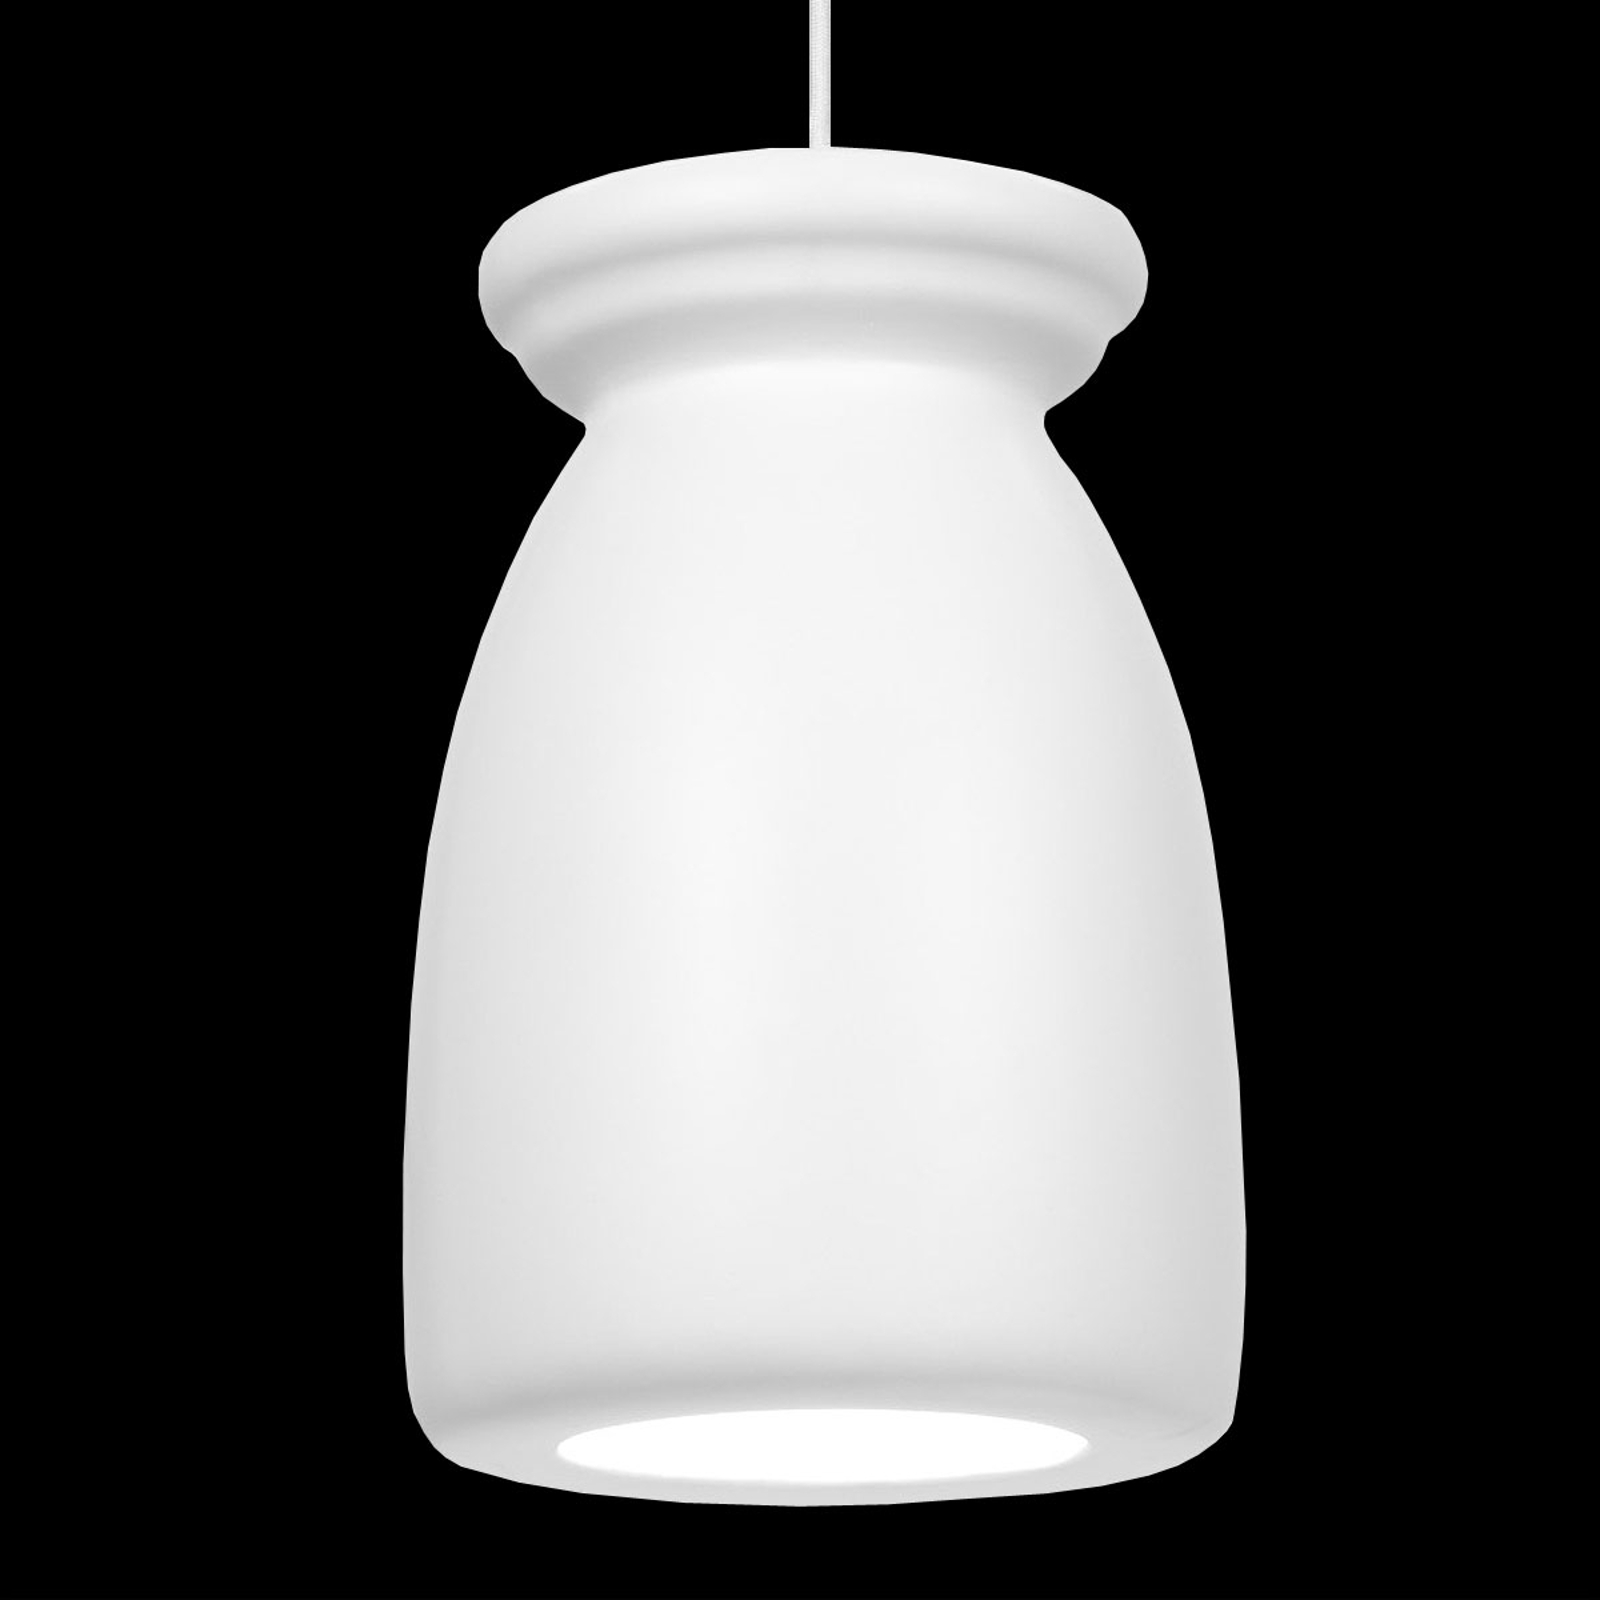 Biscuit hanging light with designer quality_1022018_1